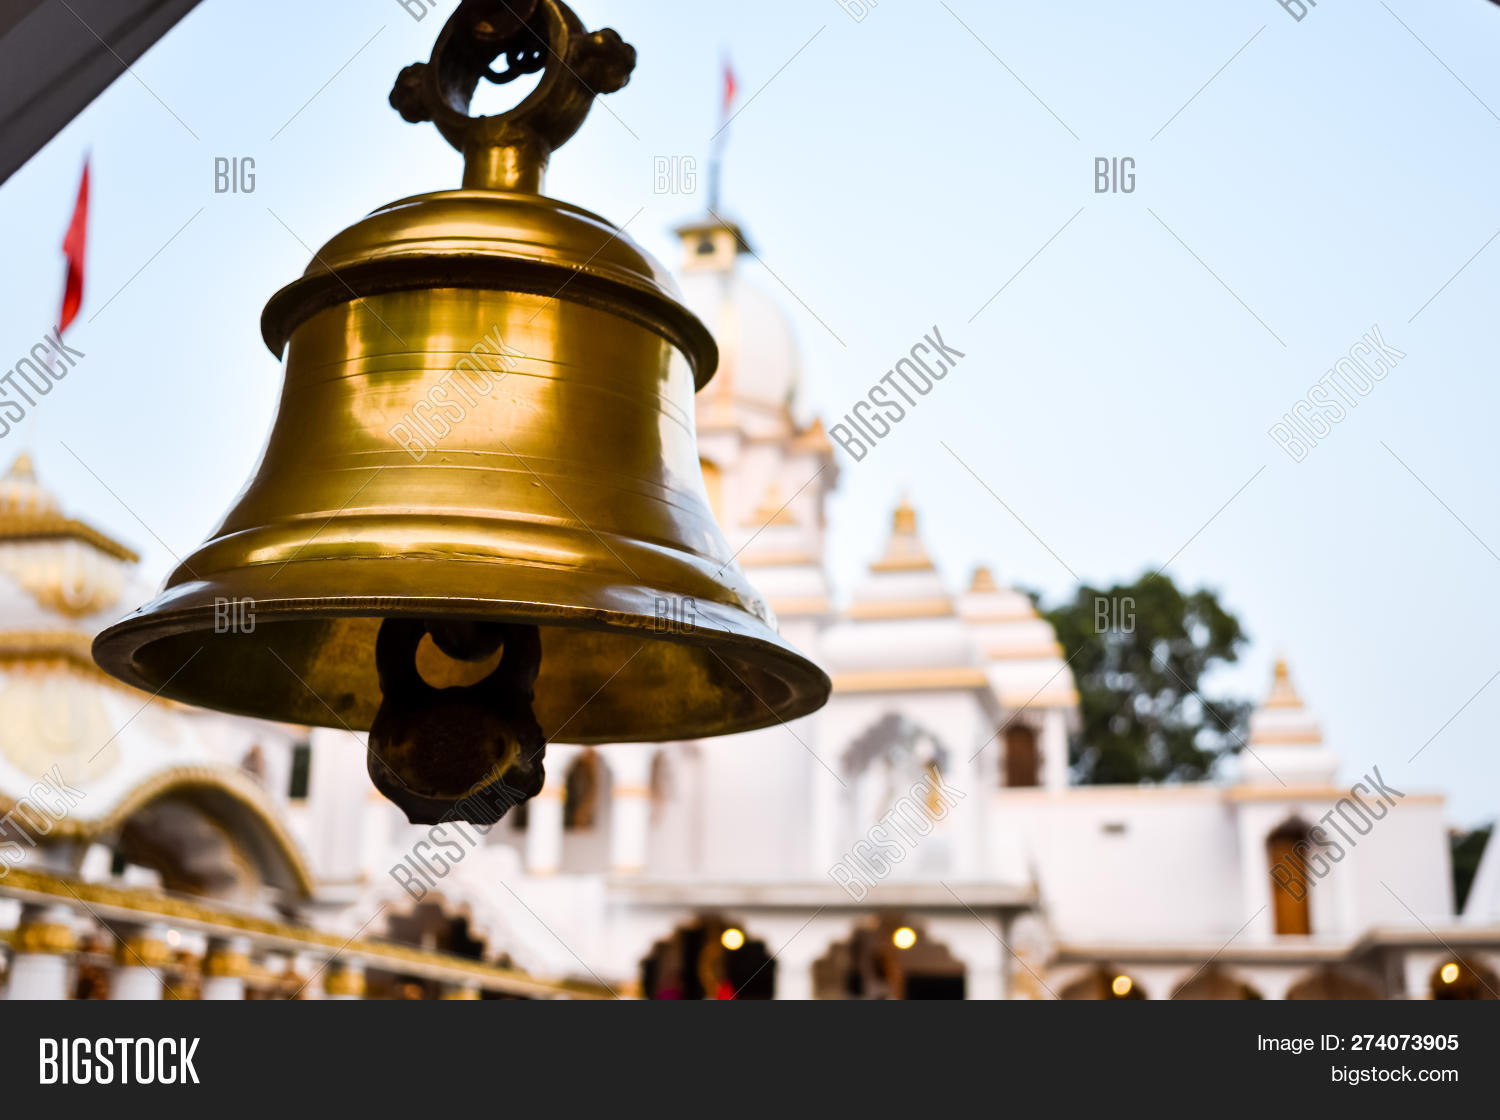 Ring Bells Temple  Image & Photo (Free Trial) | Bigstock